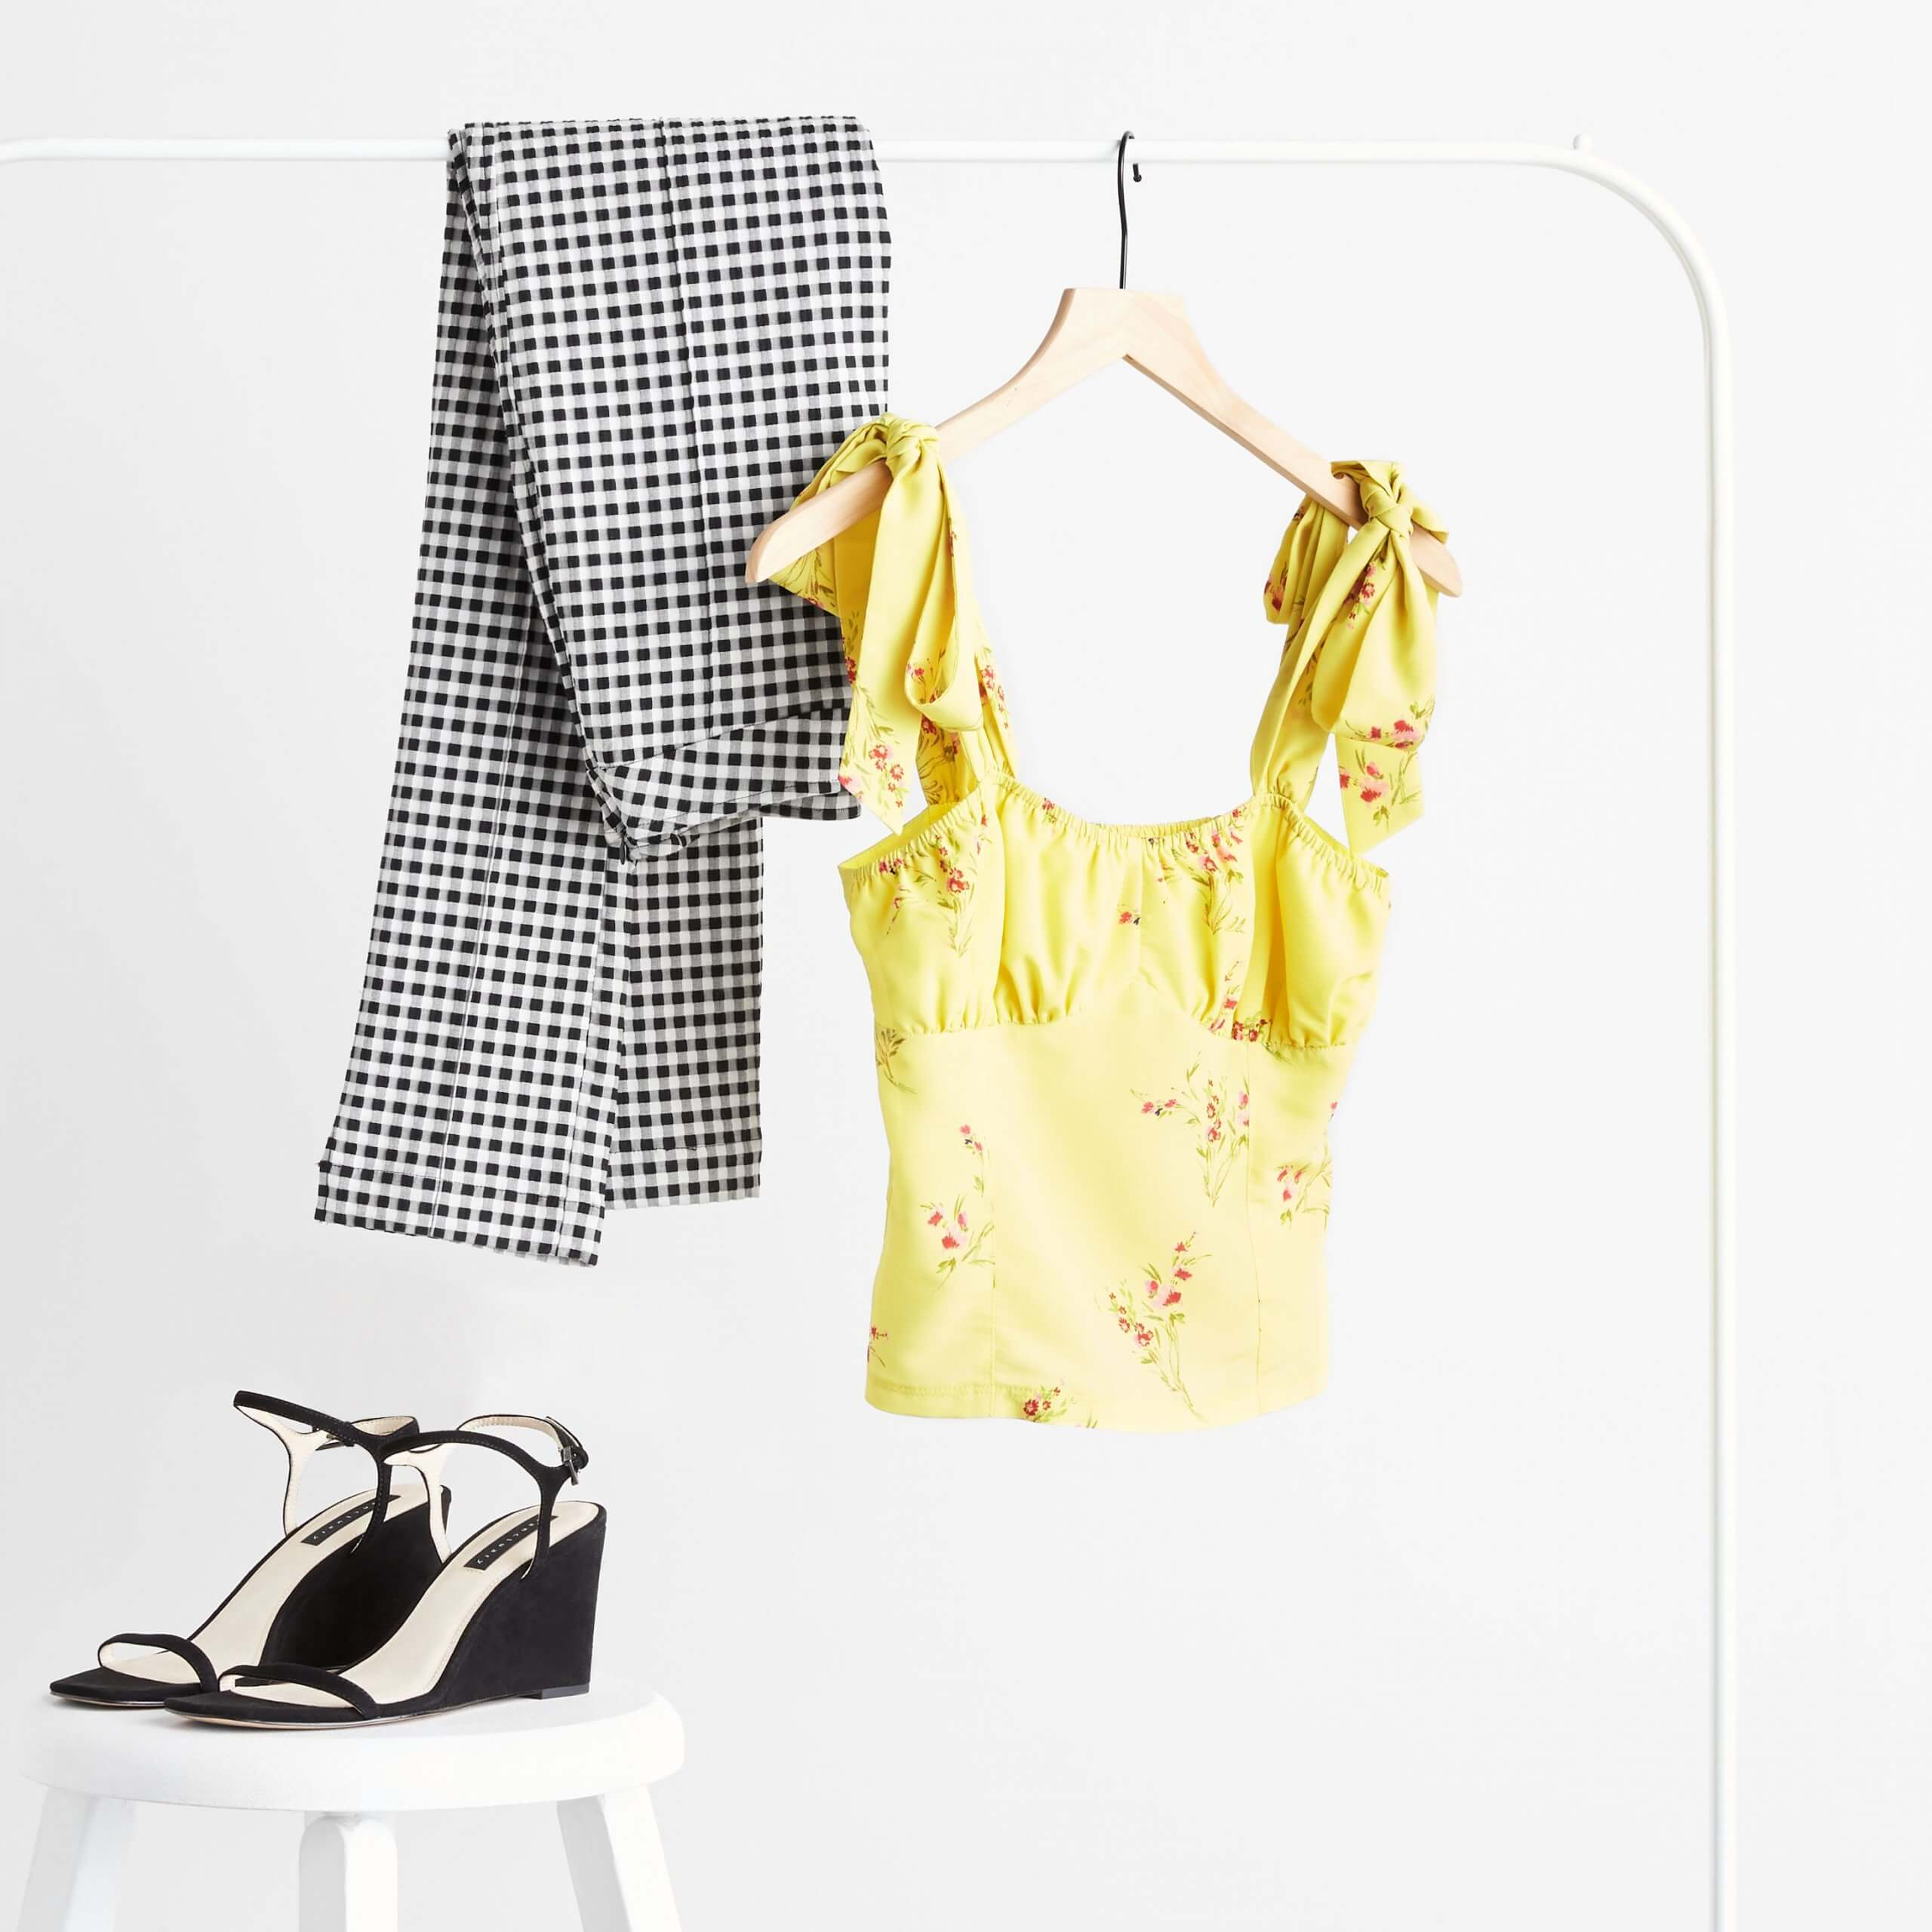 Stitch Fix Women's yellow floral ruffle sleeve top and black and white checkered pants hanging on rack next to black wedges on white stool.